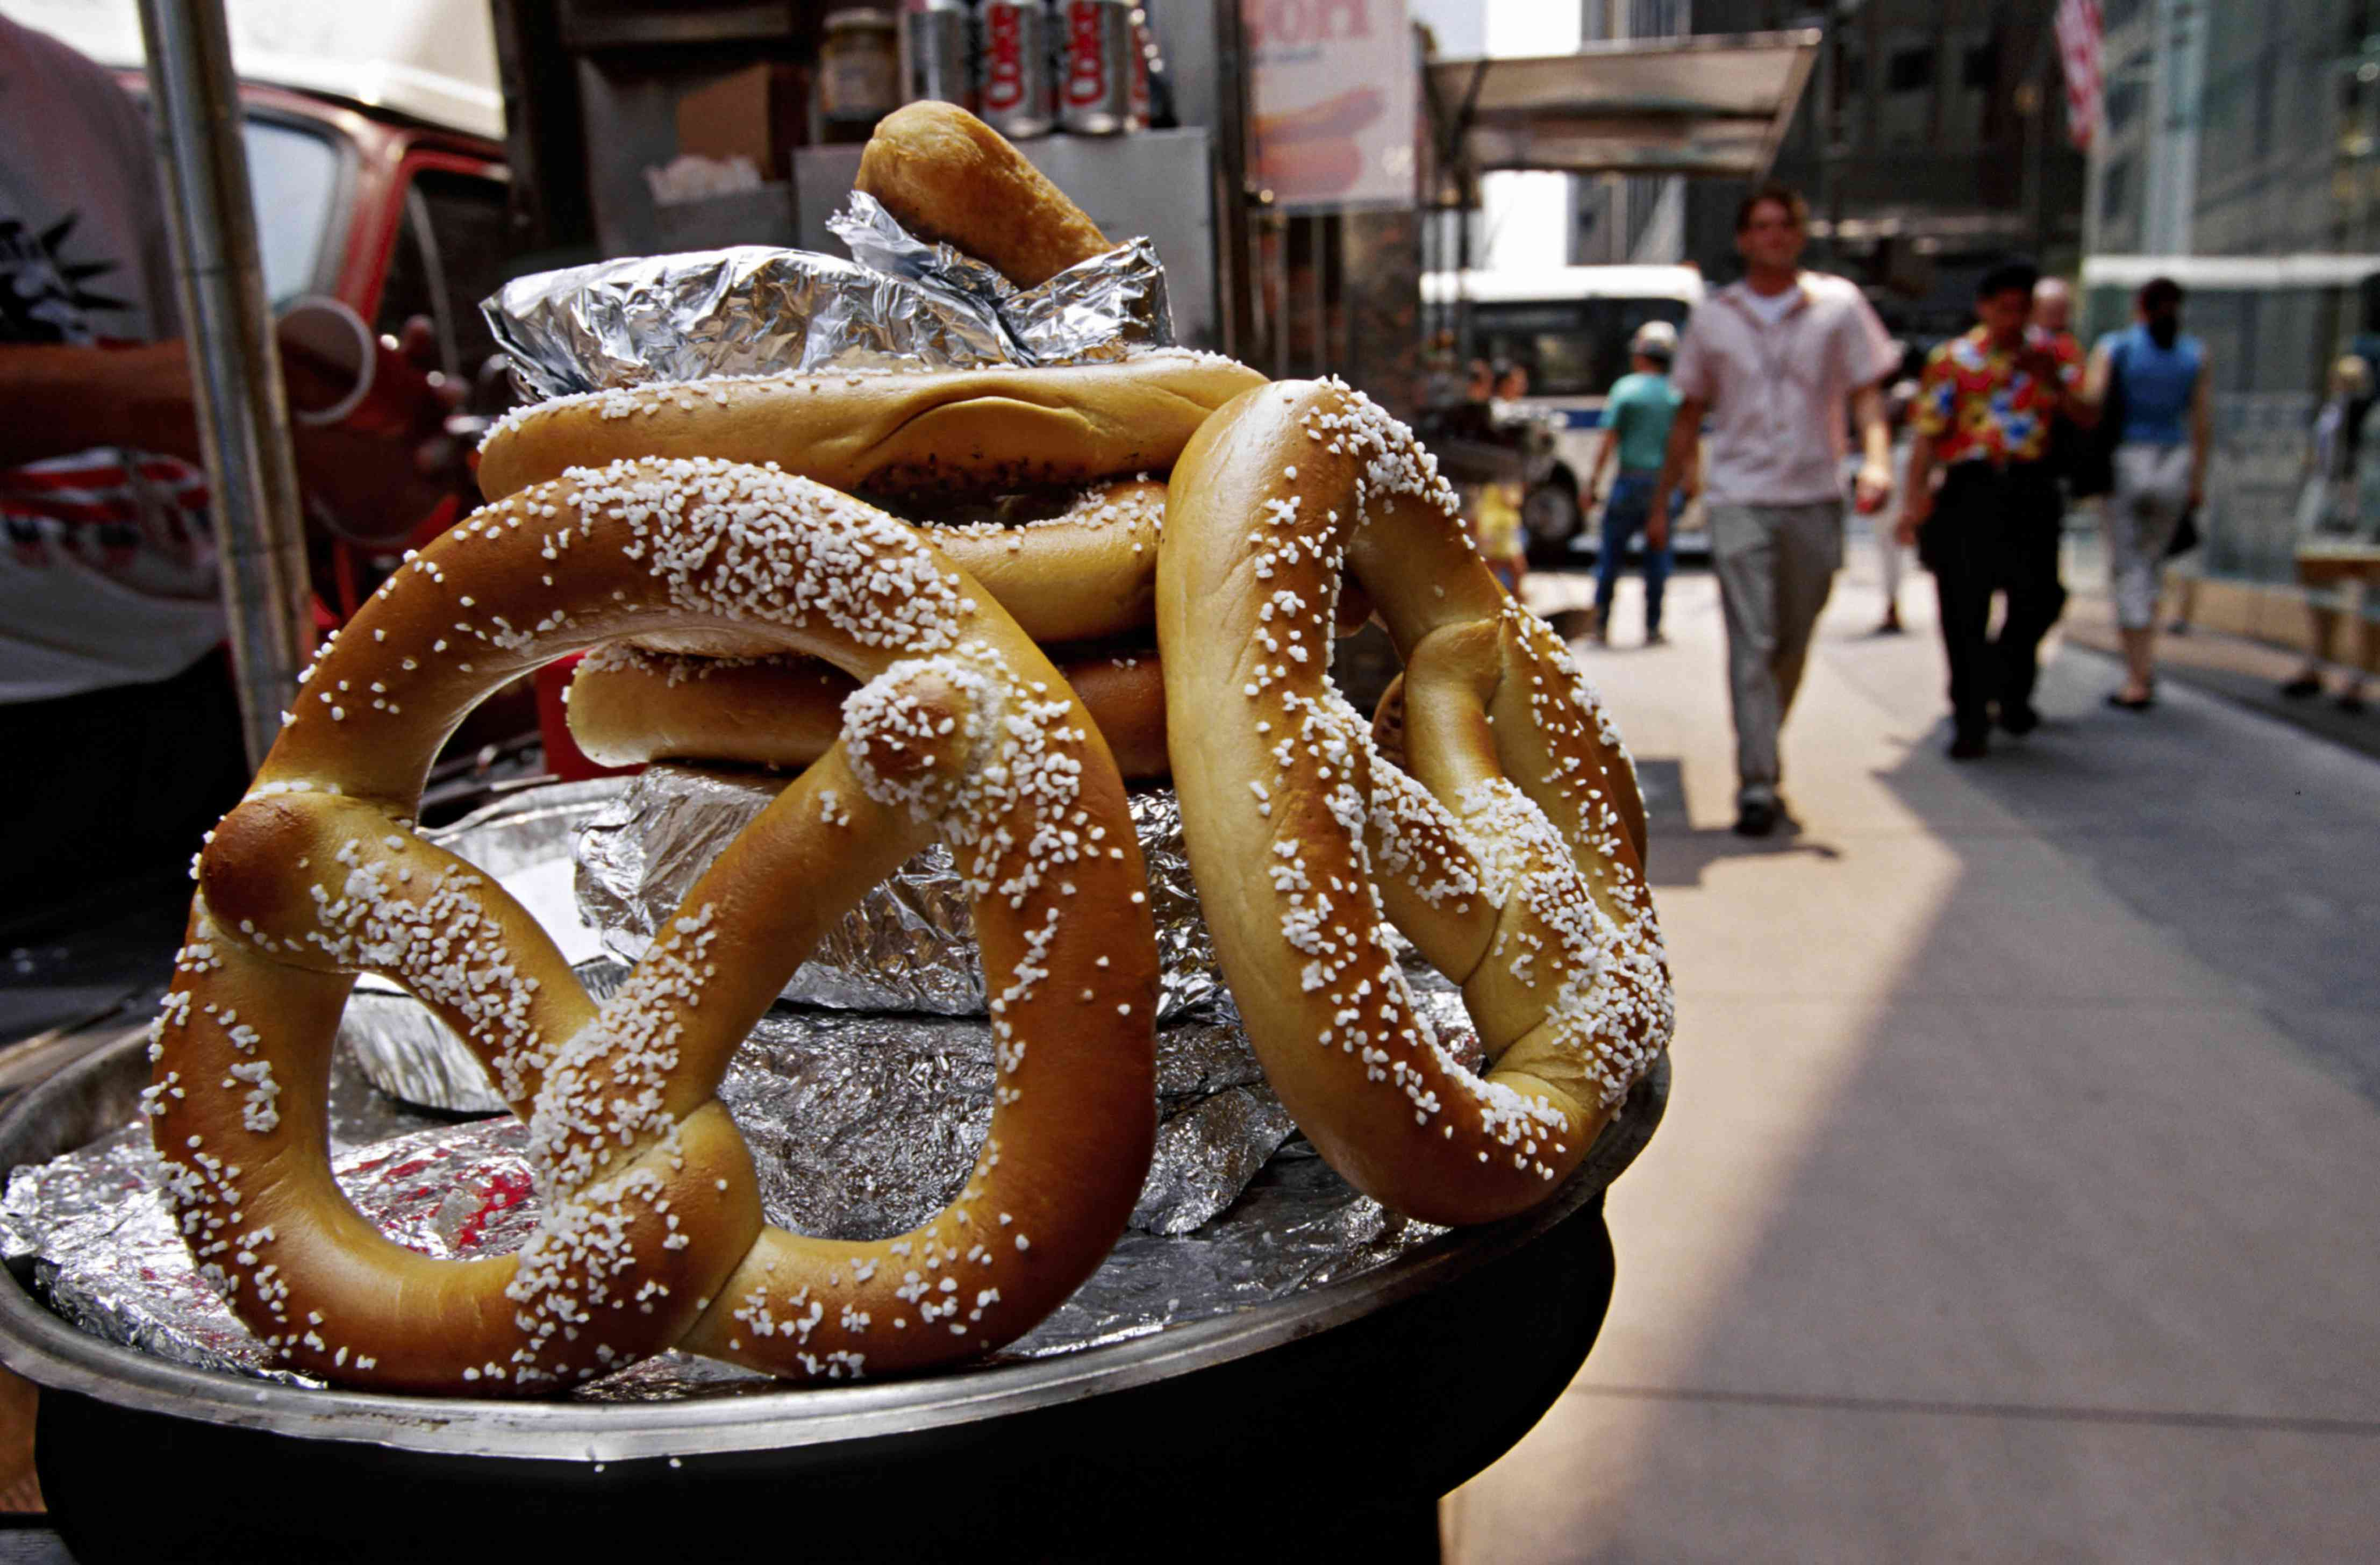 Close up of pretzels being sold on a busy city street